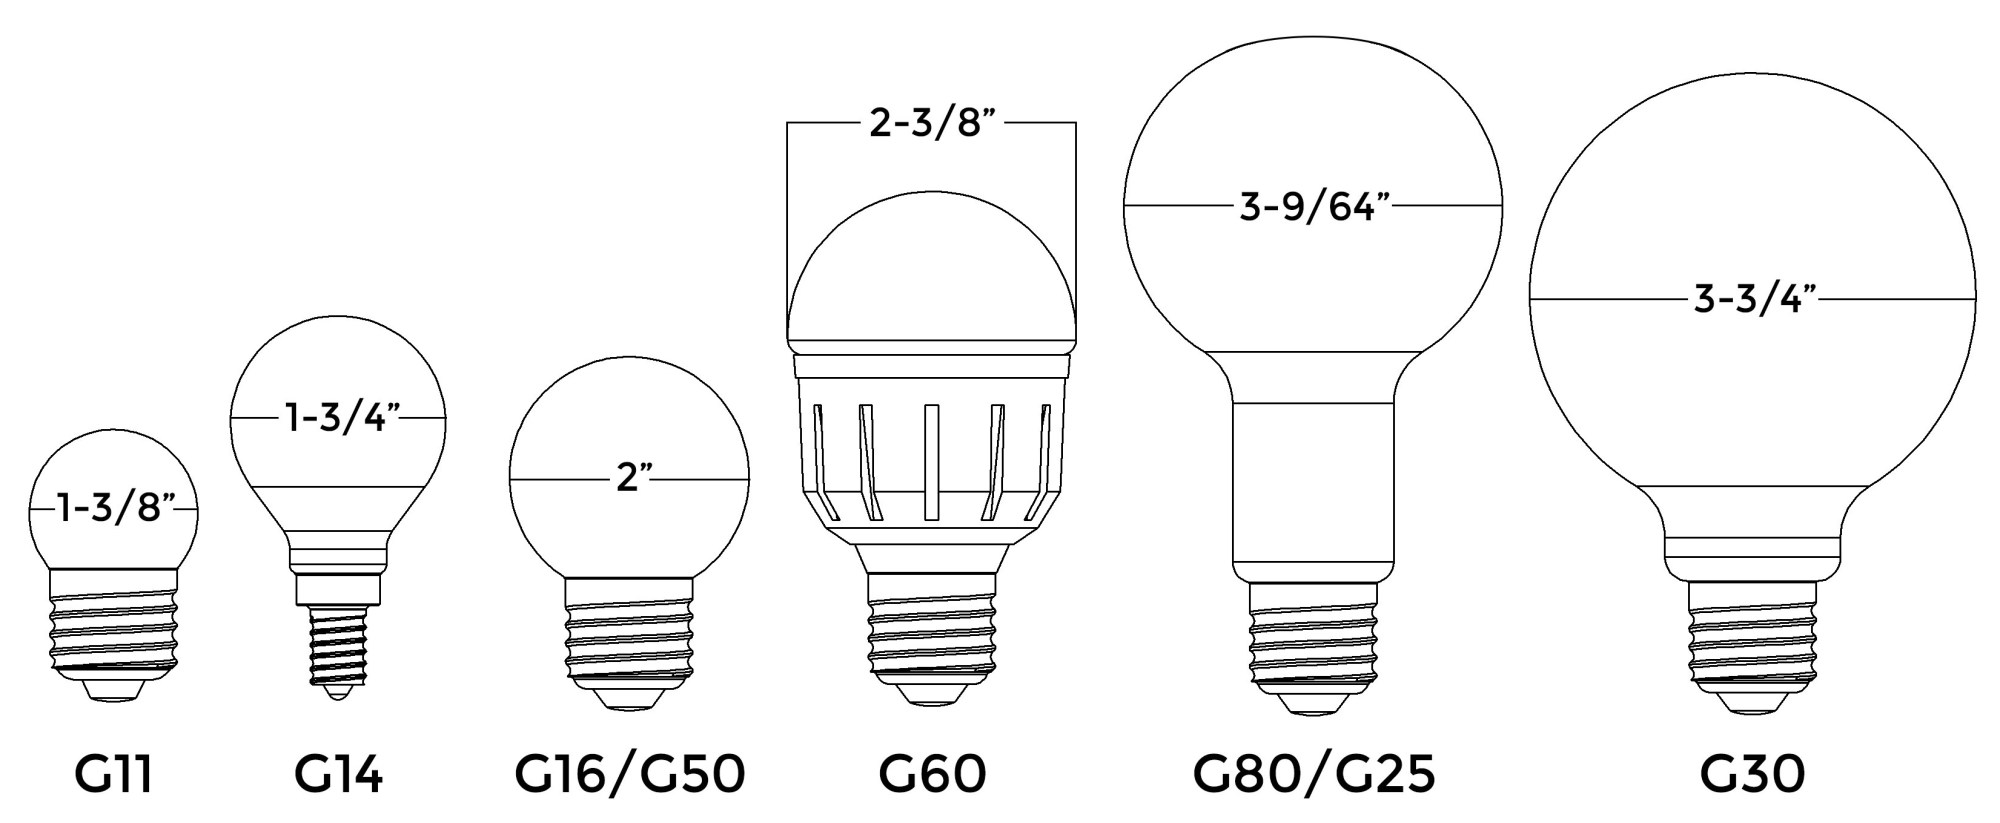 hight resolution of g bulb drawings